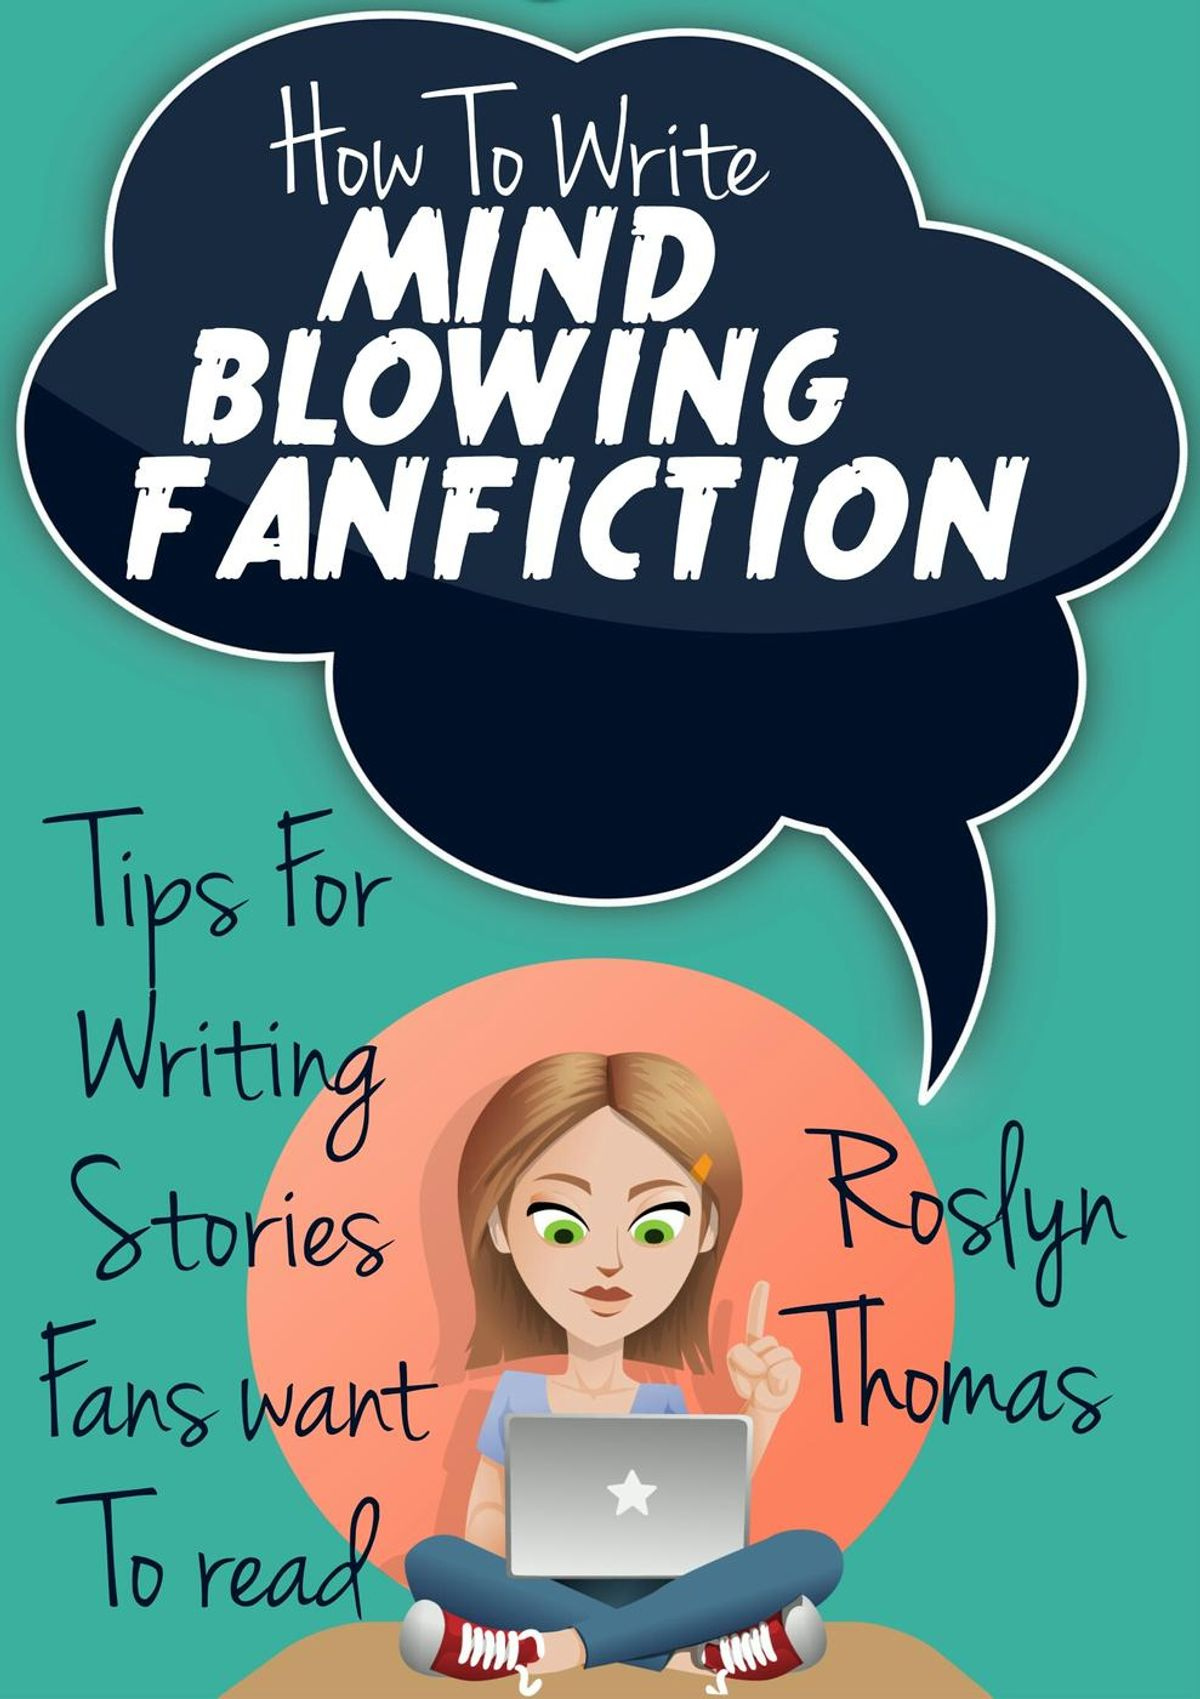 How To Write Mind Blowing FanFiction - eBook - Walmart com